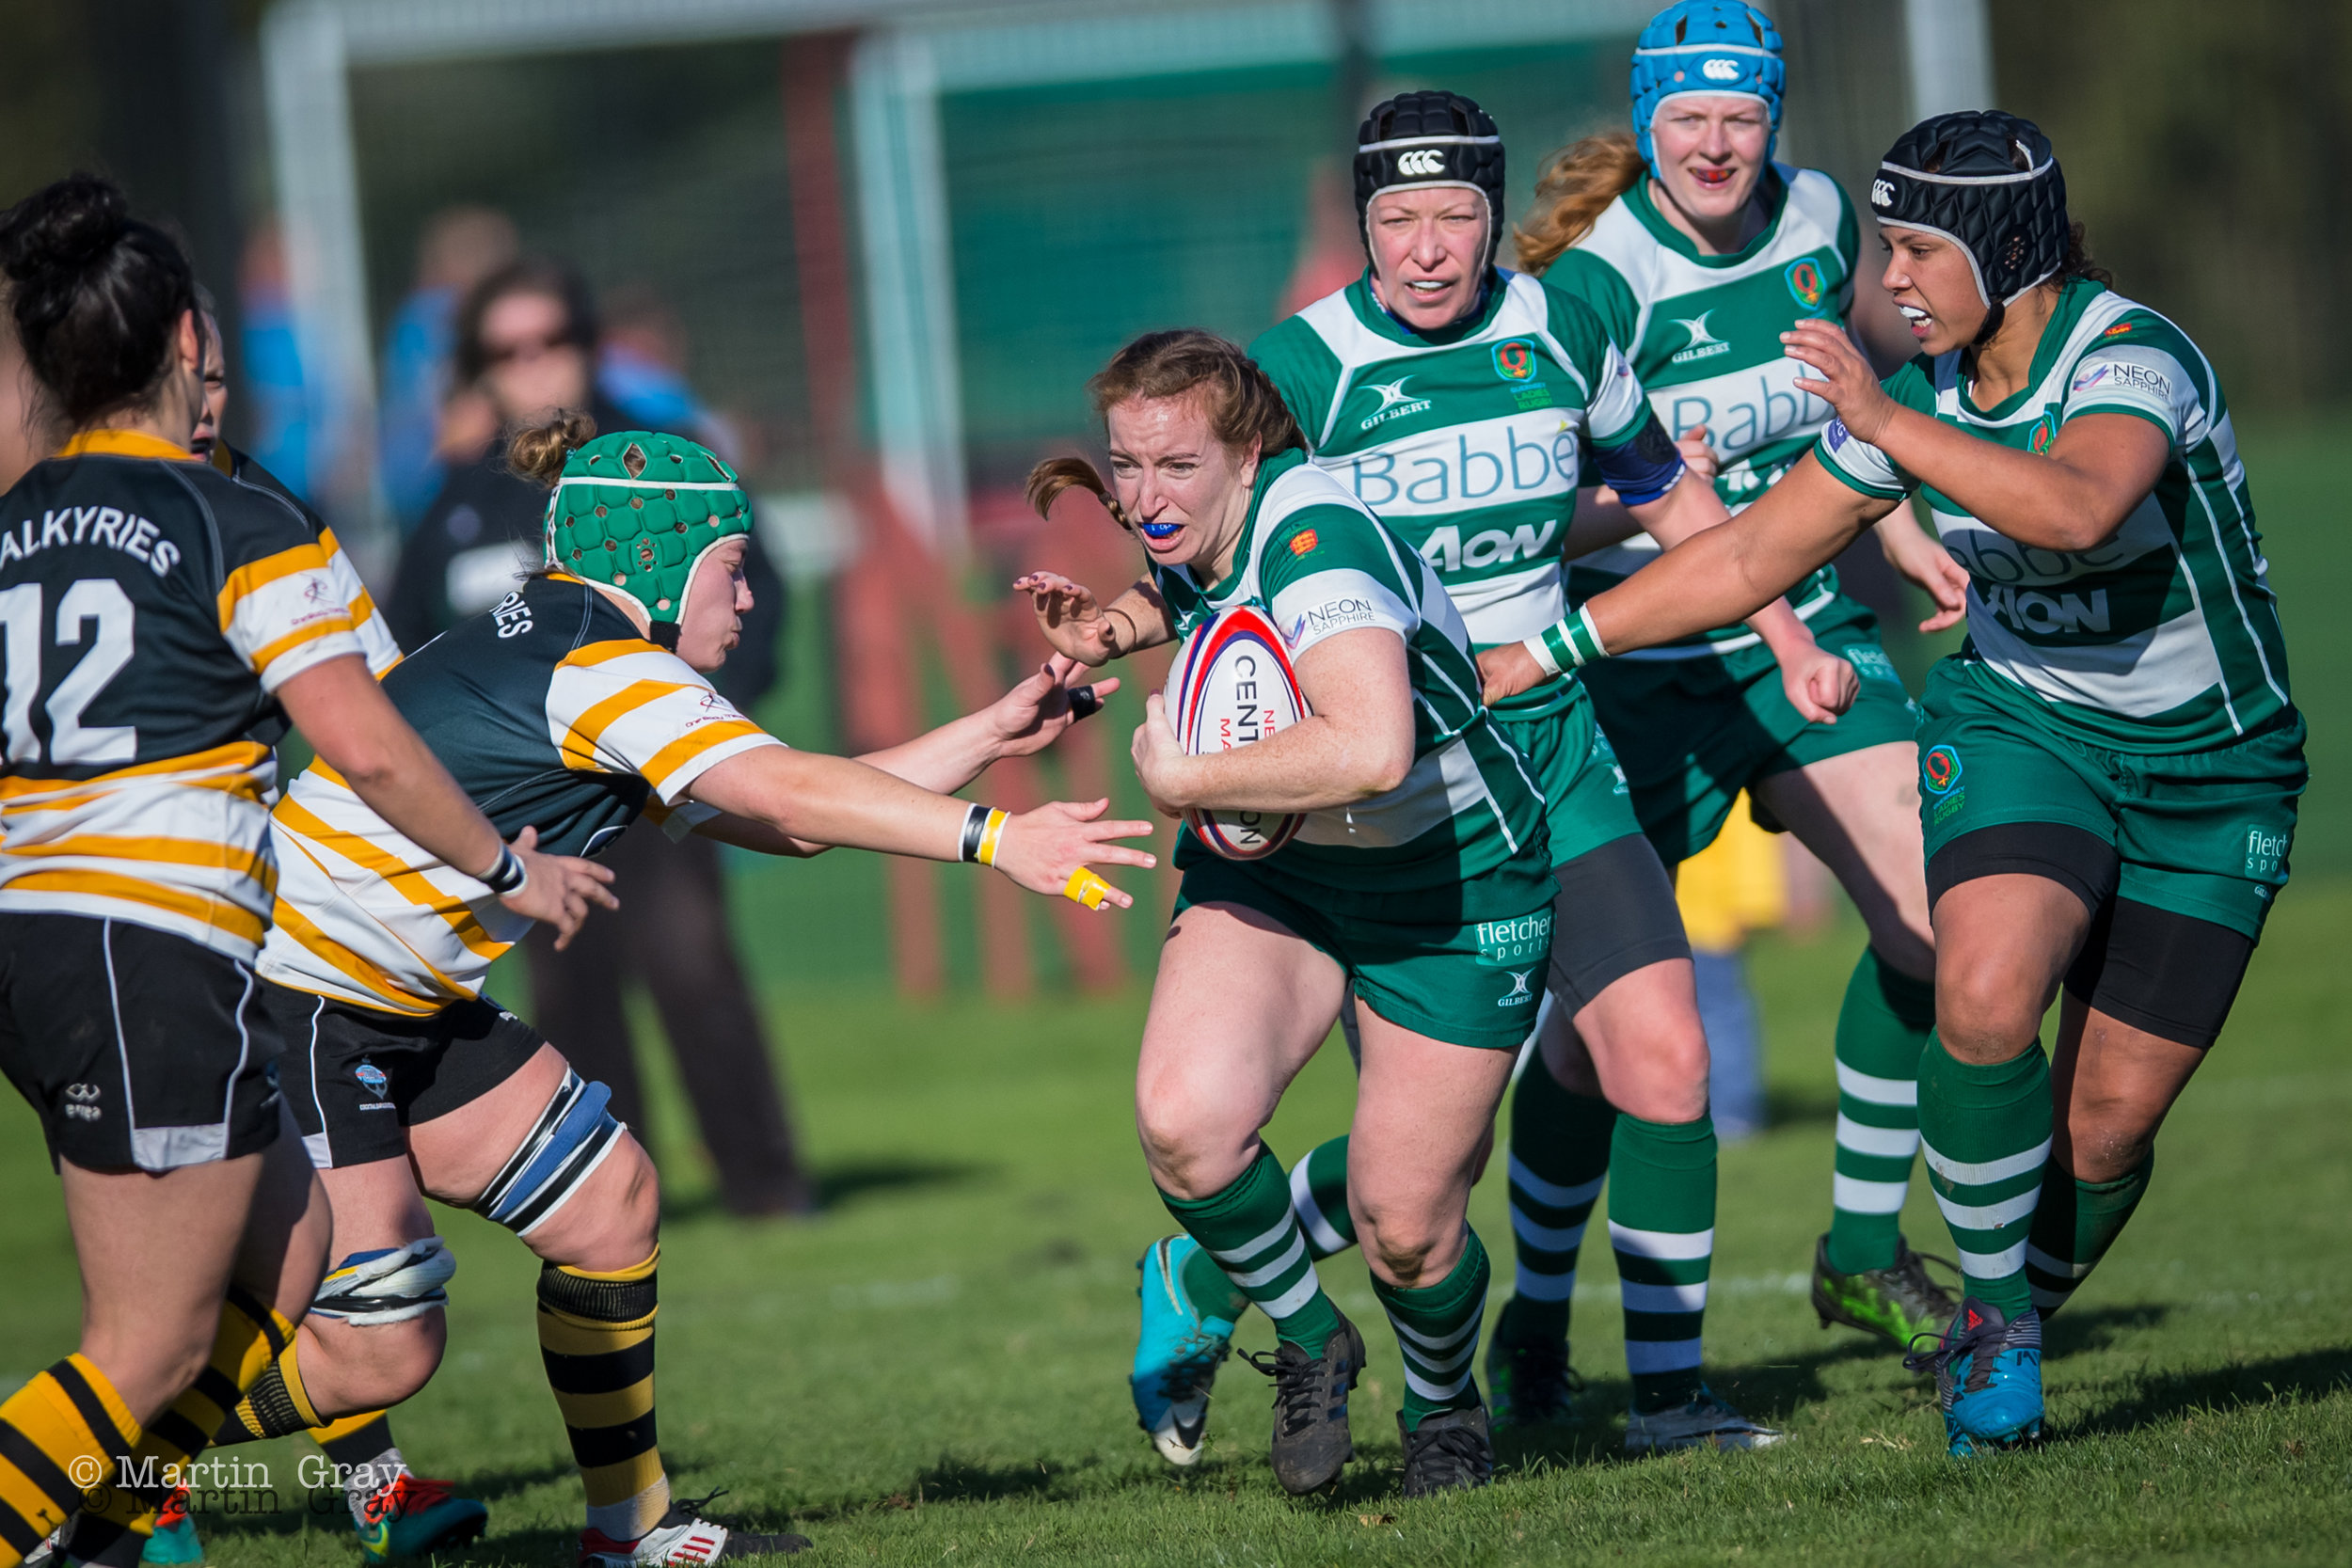 Guernsey Ladies v Portsmouth Valkyries played at Footes Lane (Club Pitch) on 3rd November 2018… Portsmouth win 10-35…